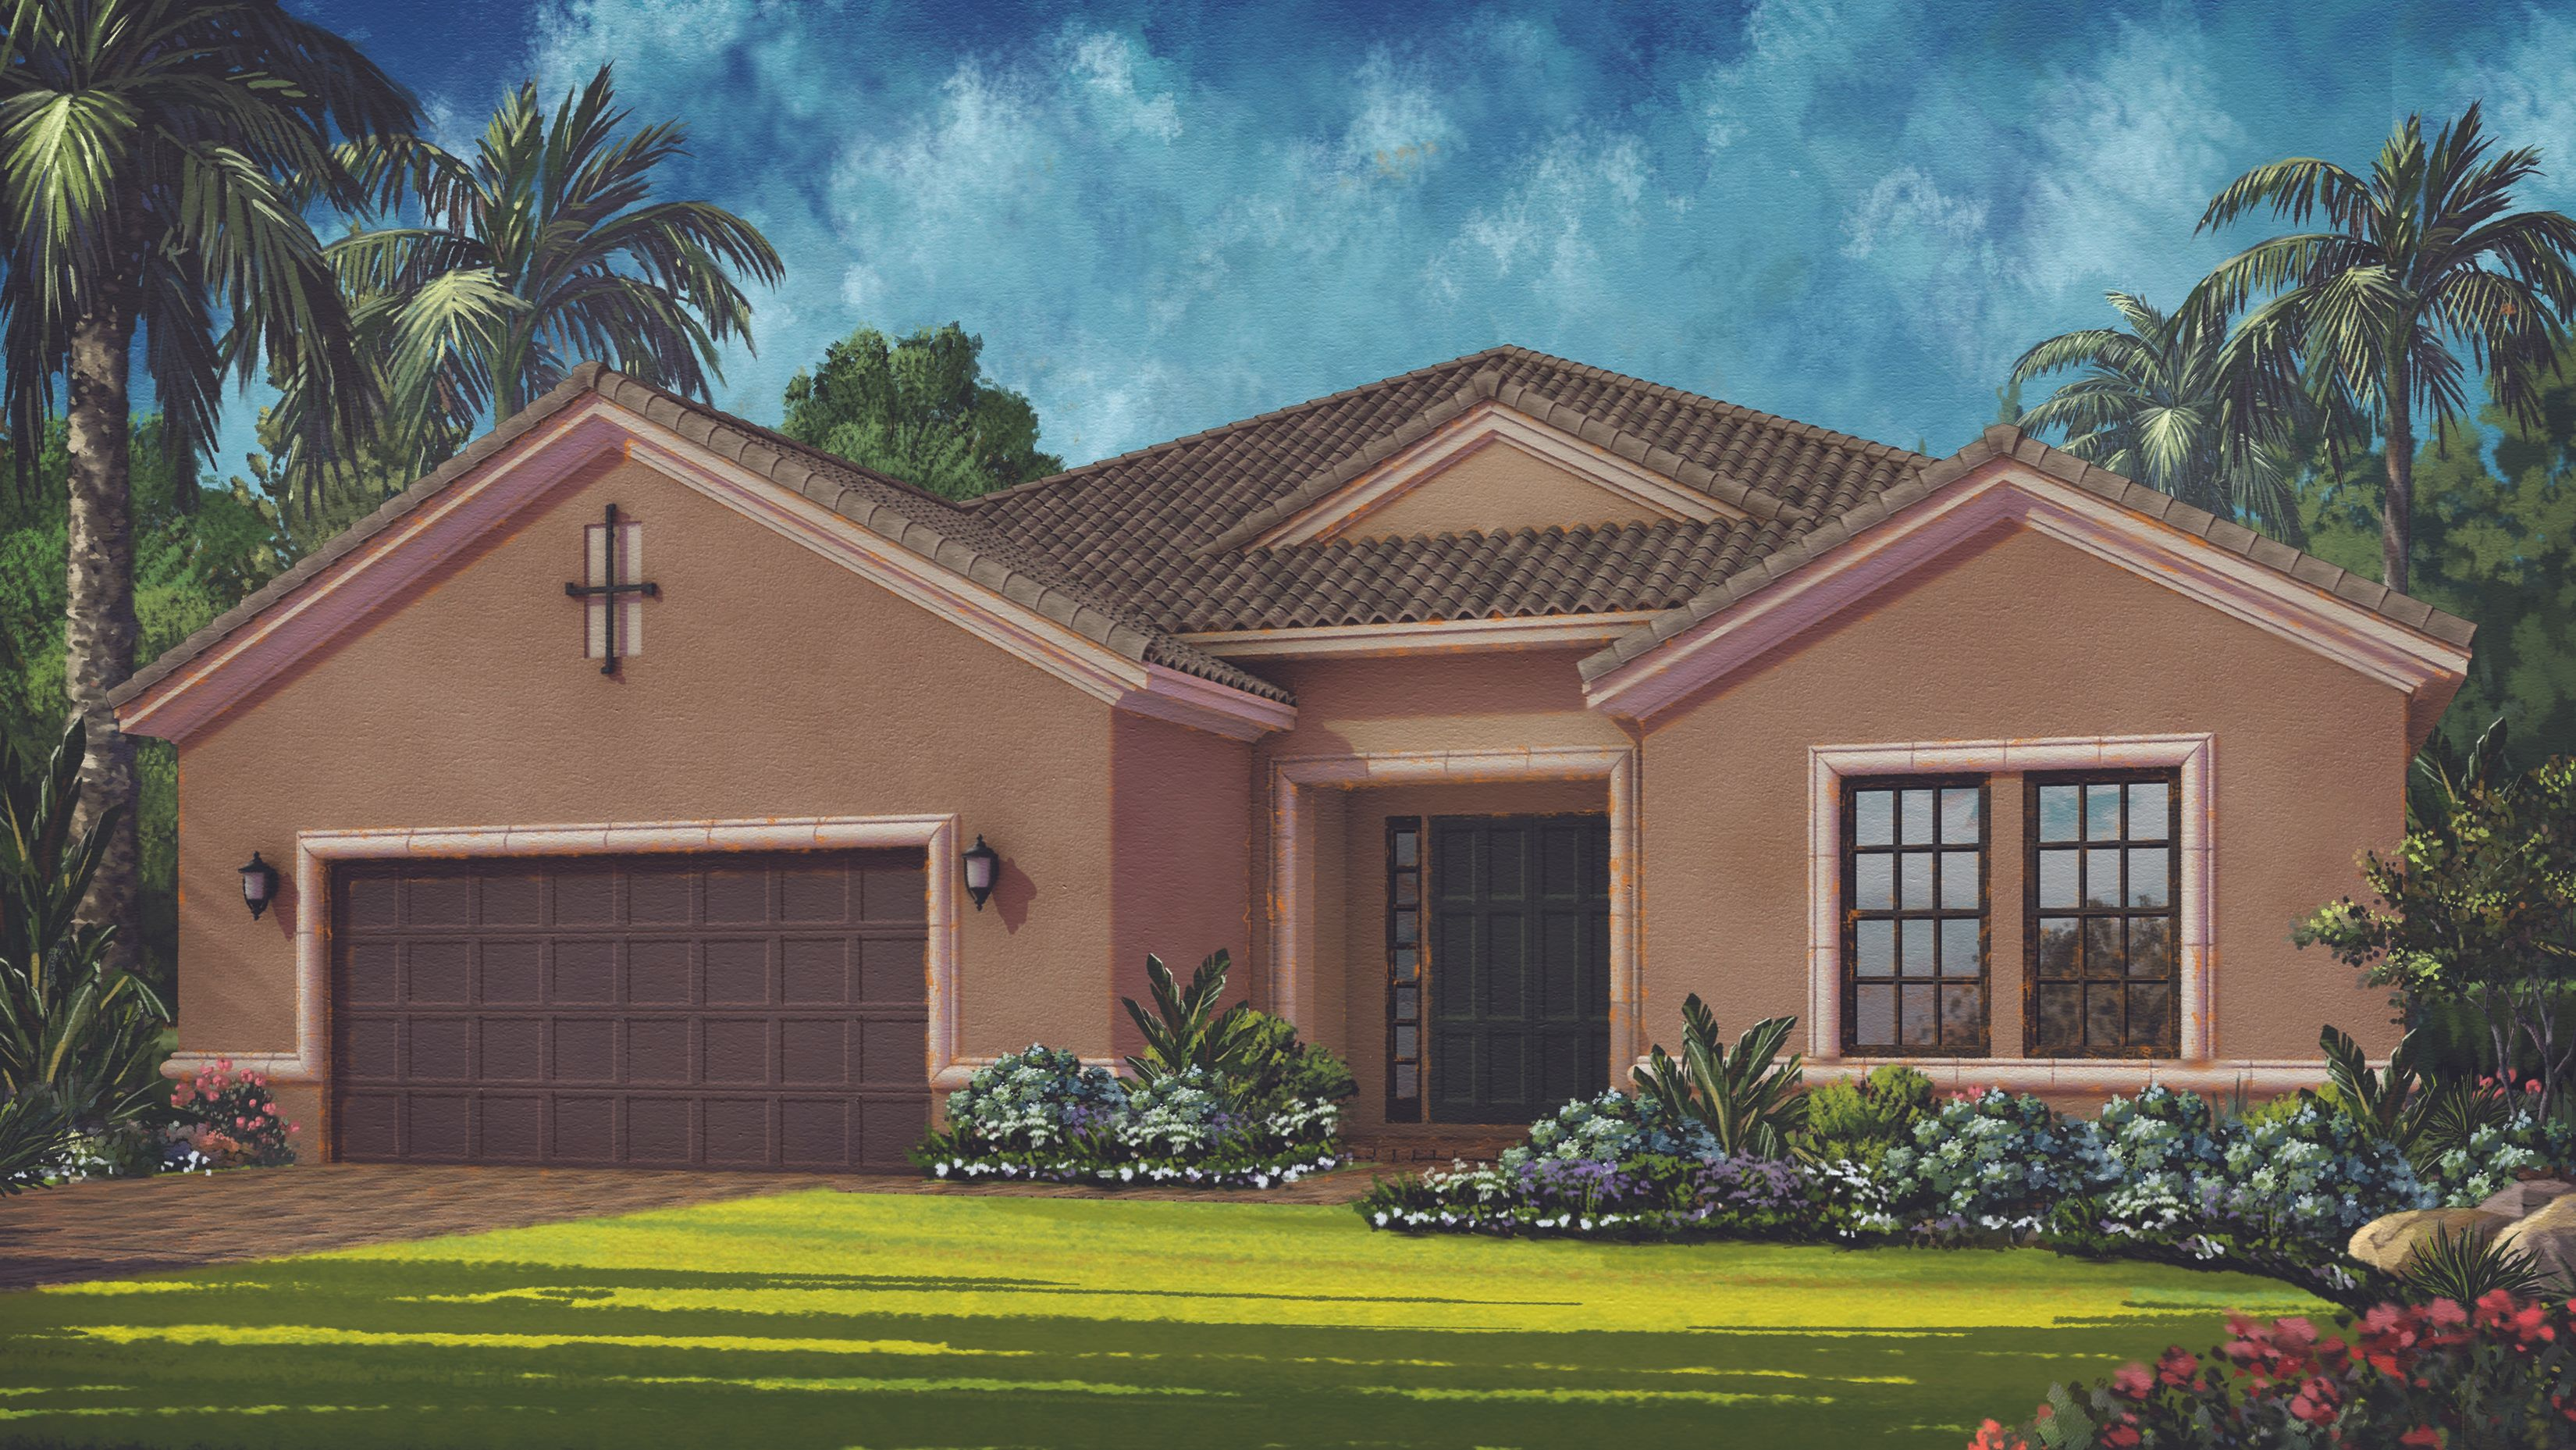 Single Family for Sale at Esplanade At Artisan Lakes - Pallazio 10419 Inglenook Terrace Palmetto, Florida 34221 United States